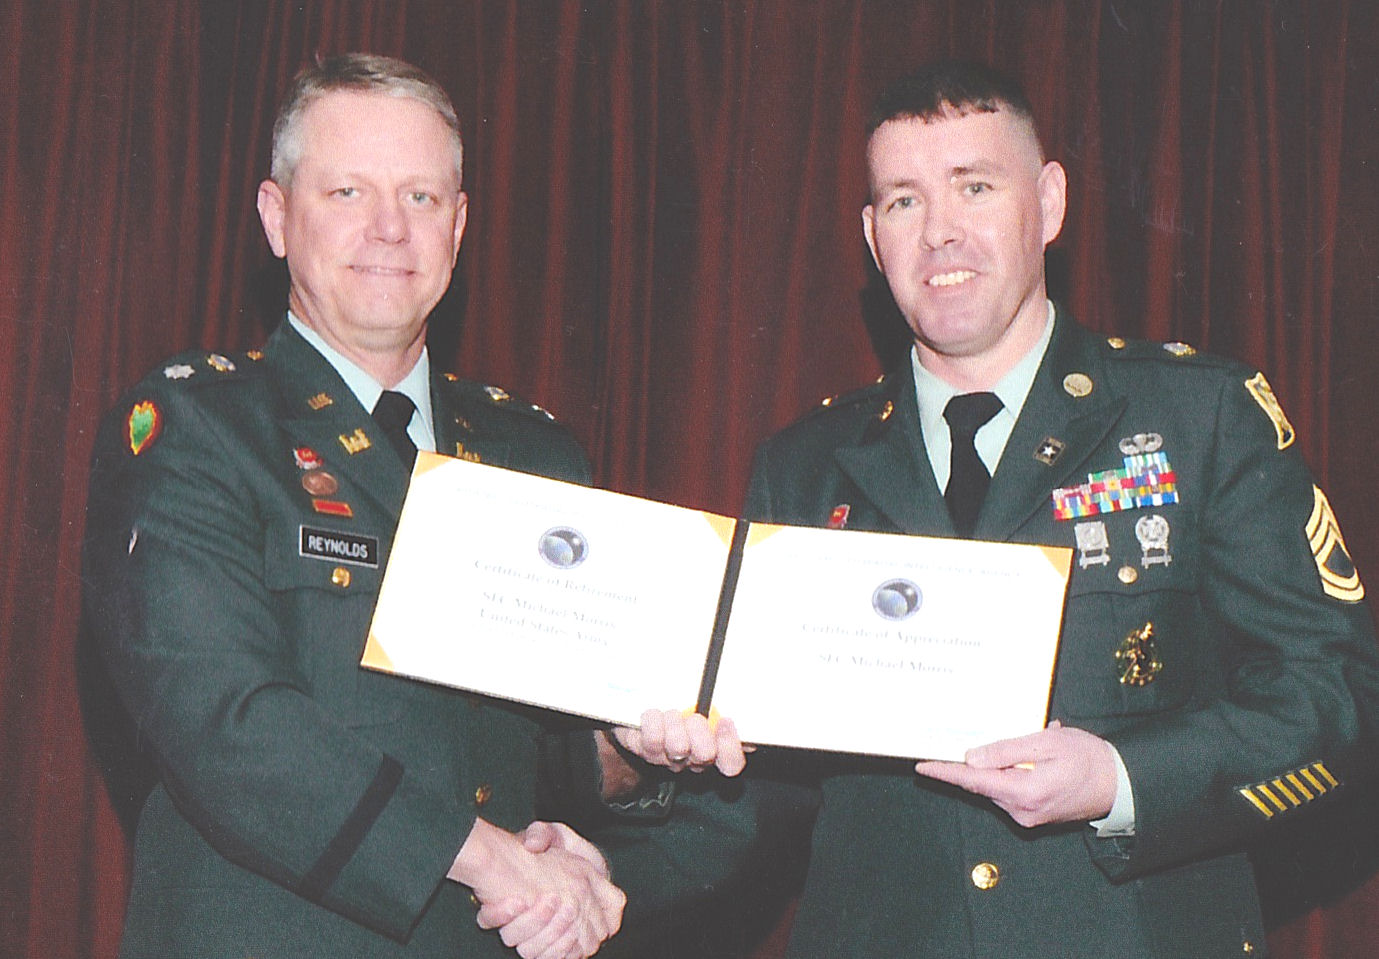 LTC Randy Reynolds and Michael Morris